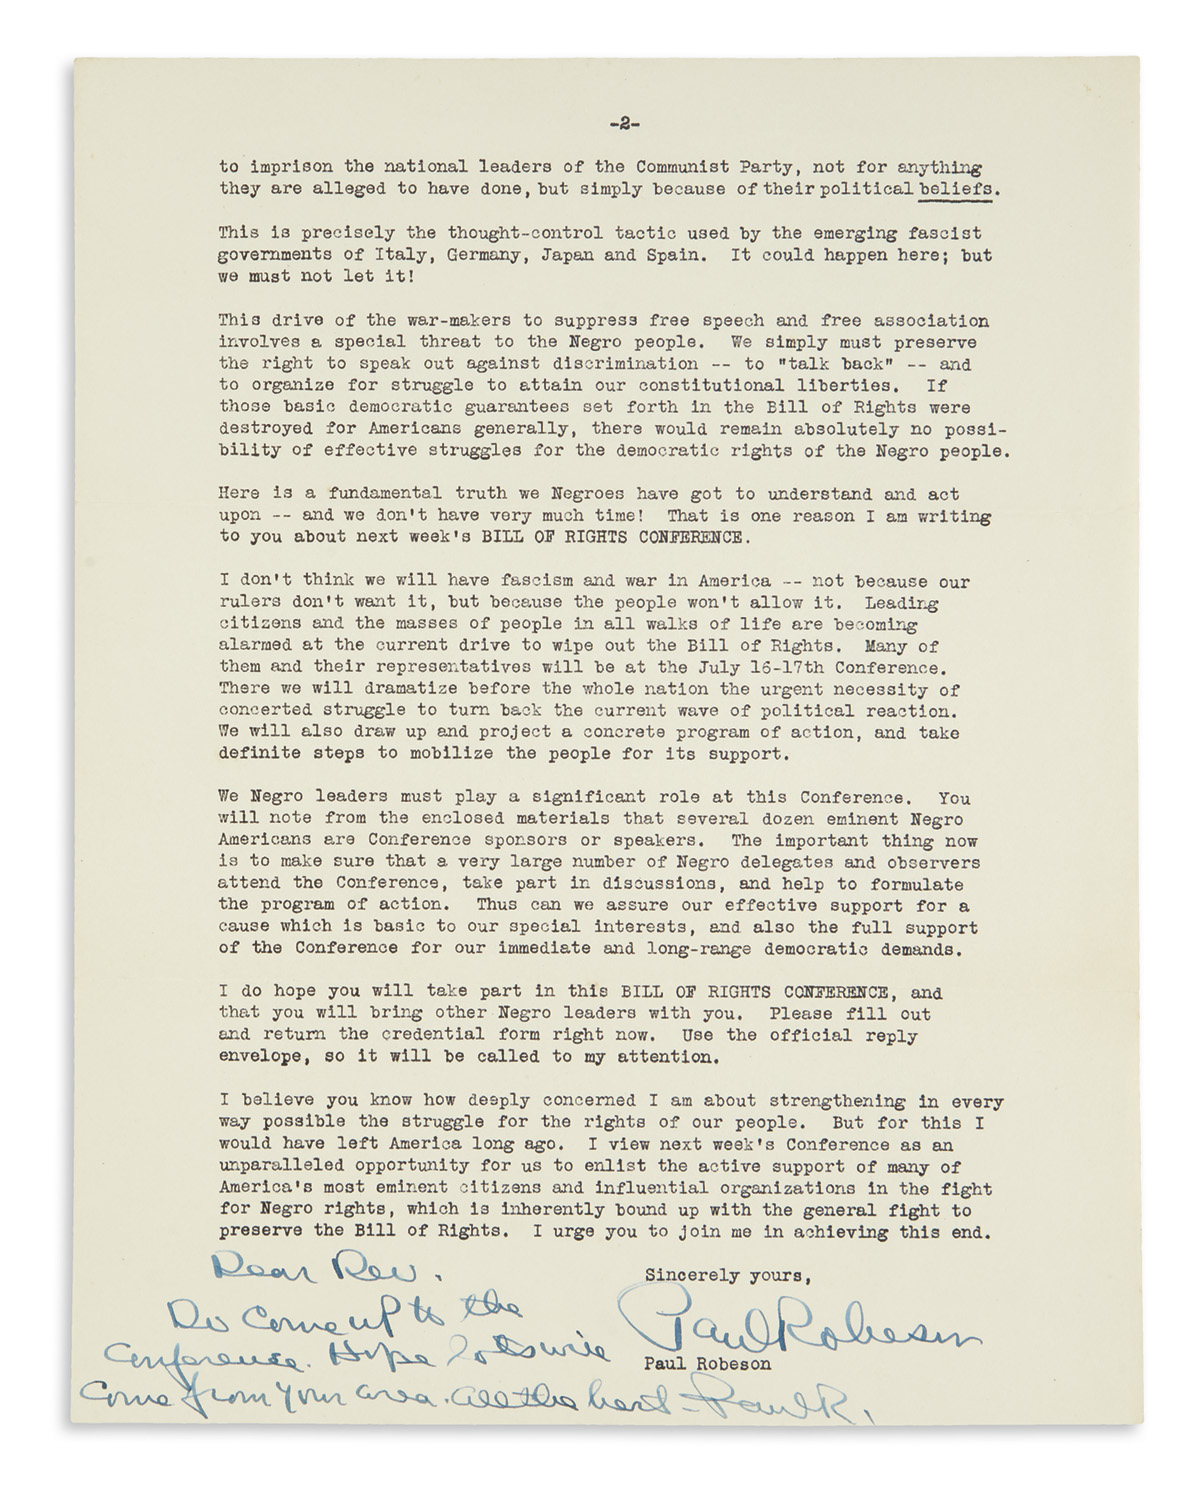 ROBESON, PAUL. Typed Letter Signed, with Autograph postscript additionally Signed, Paul R., to Dear Rev. Freeman,